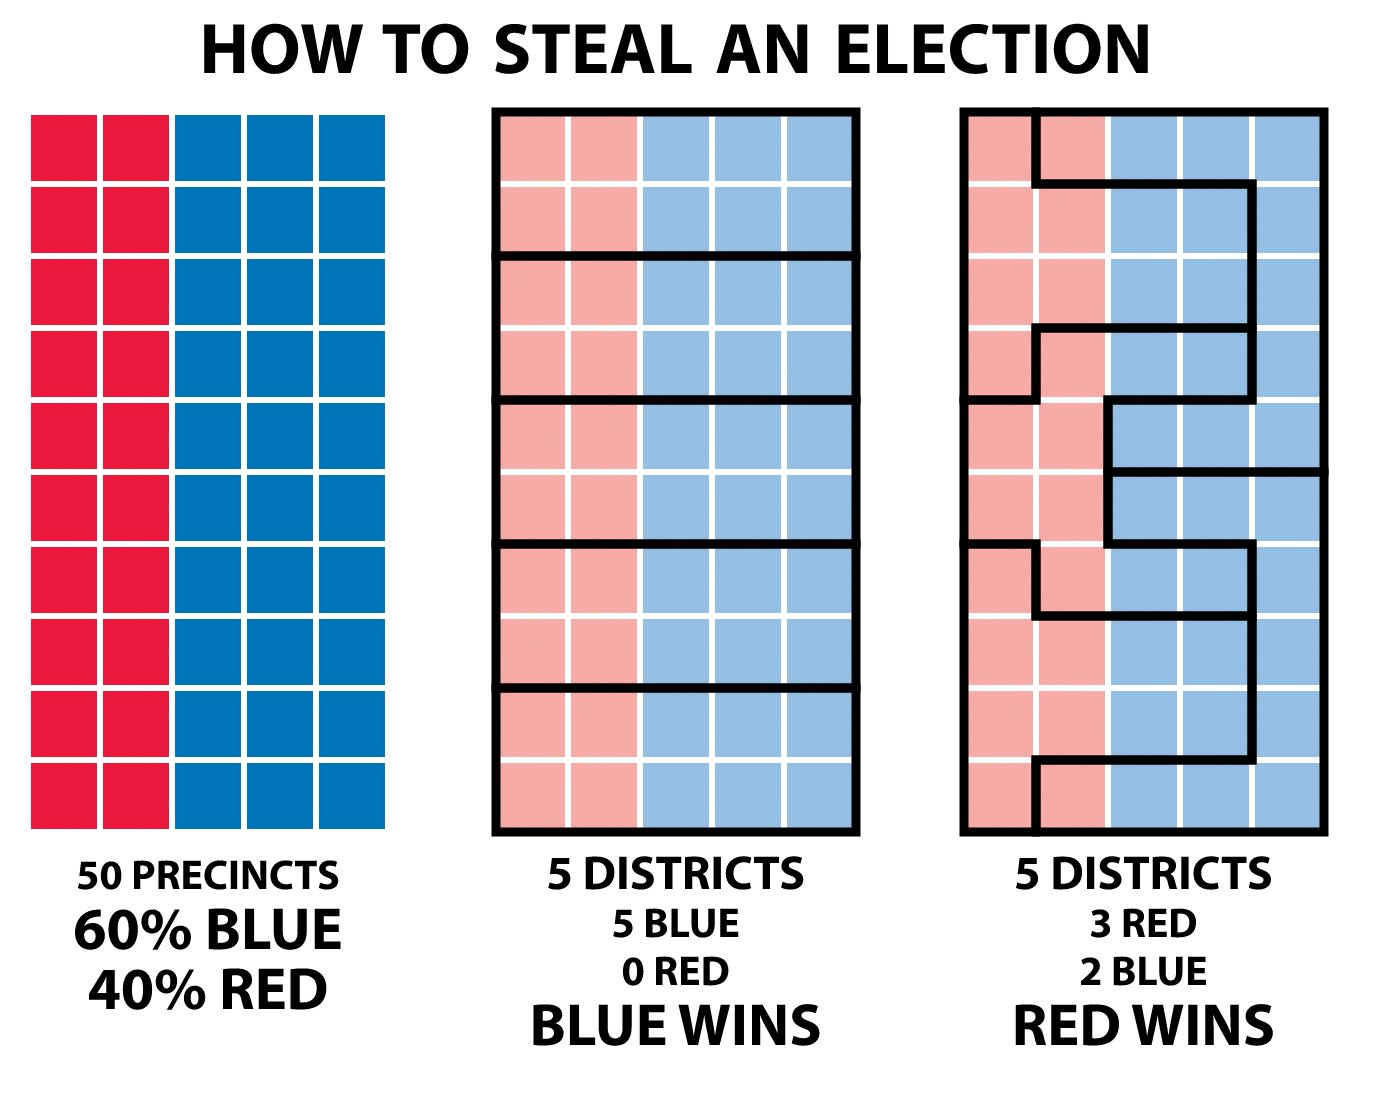 government gerrymandering Quizlet provides gerrymandering government activities, flashcards and games start learning today for free.